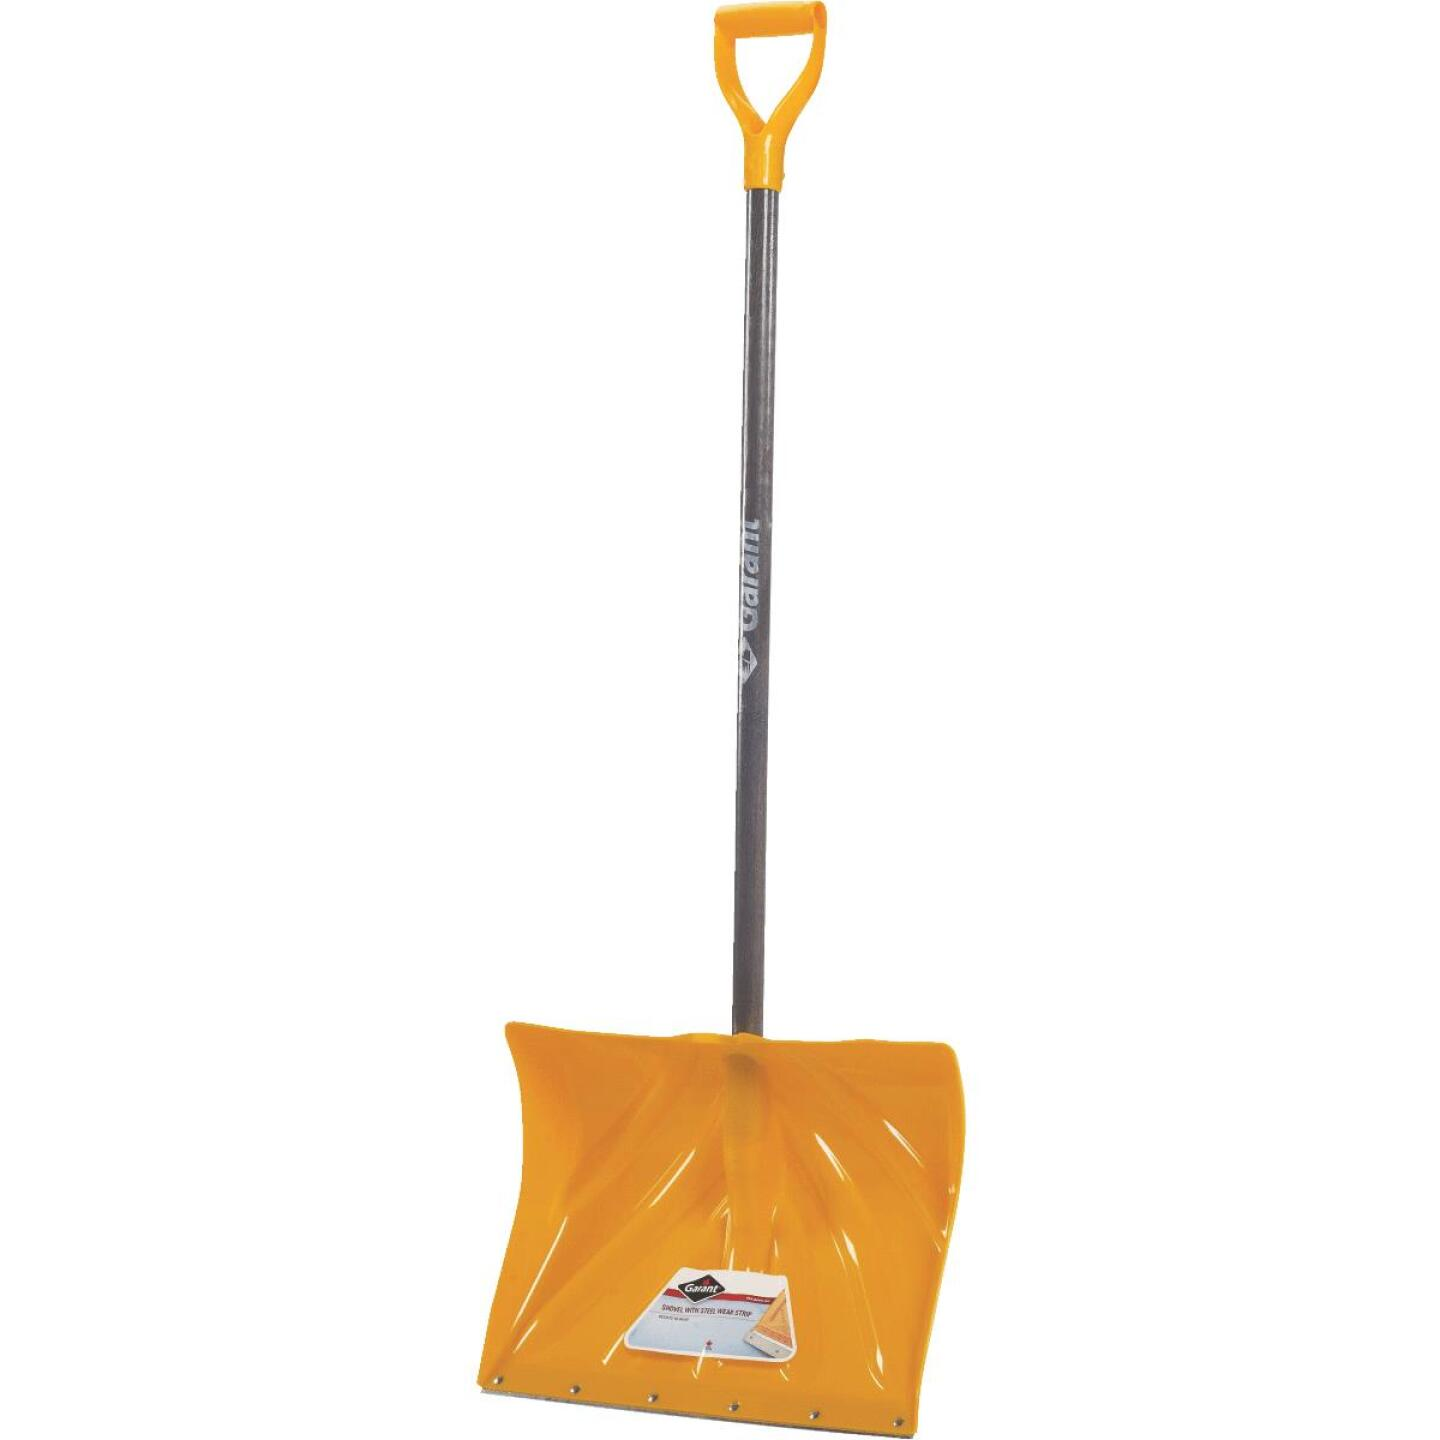 Garant Alpine 18 In. Poly Snow Shovel with 42.25 In. Wood Handle Image 1